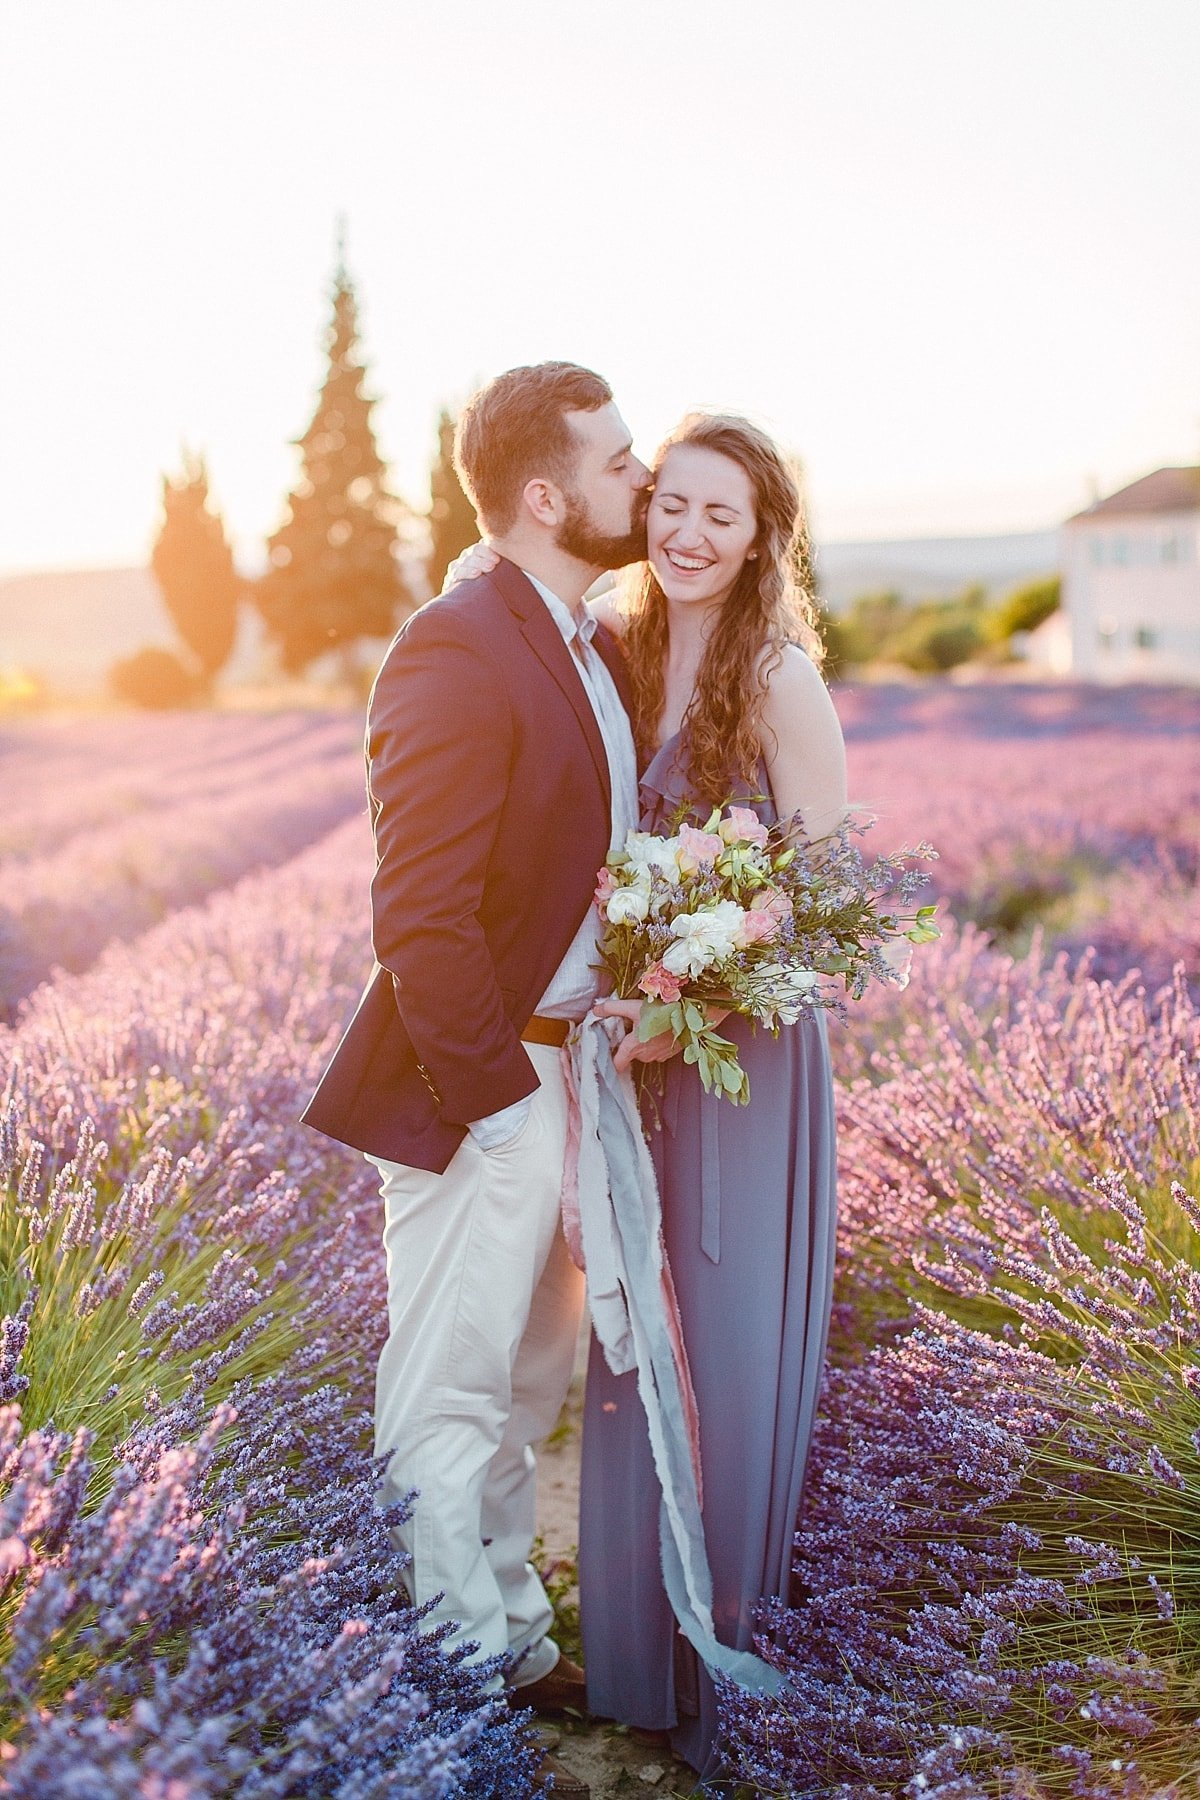 provence-france-lavender-anniversary-session-alicia-yarrish-photography-18